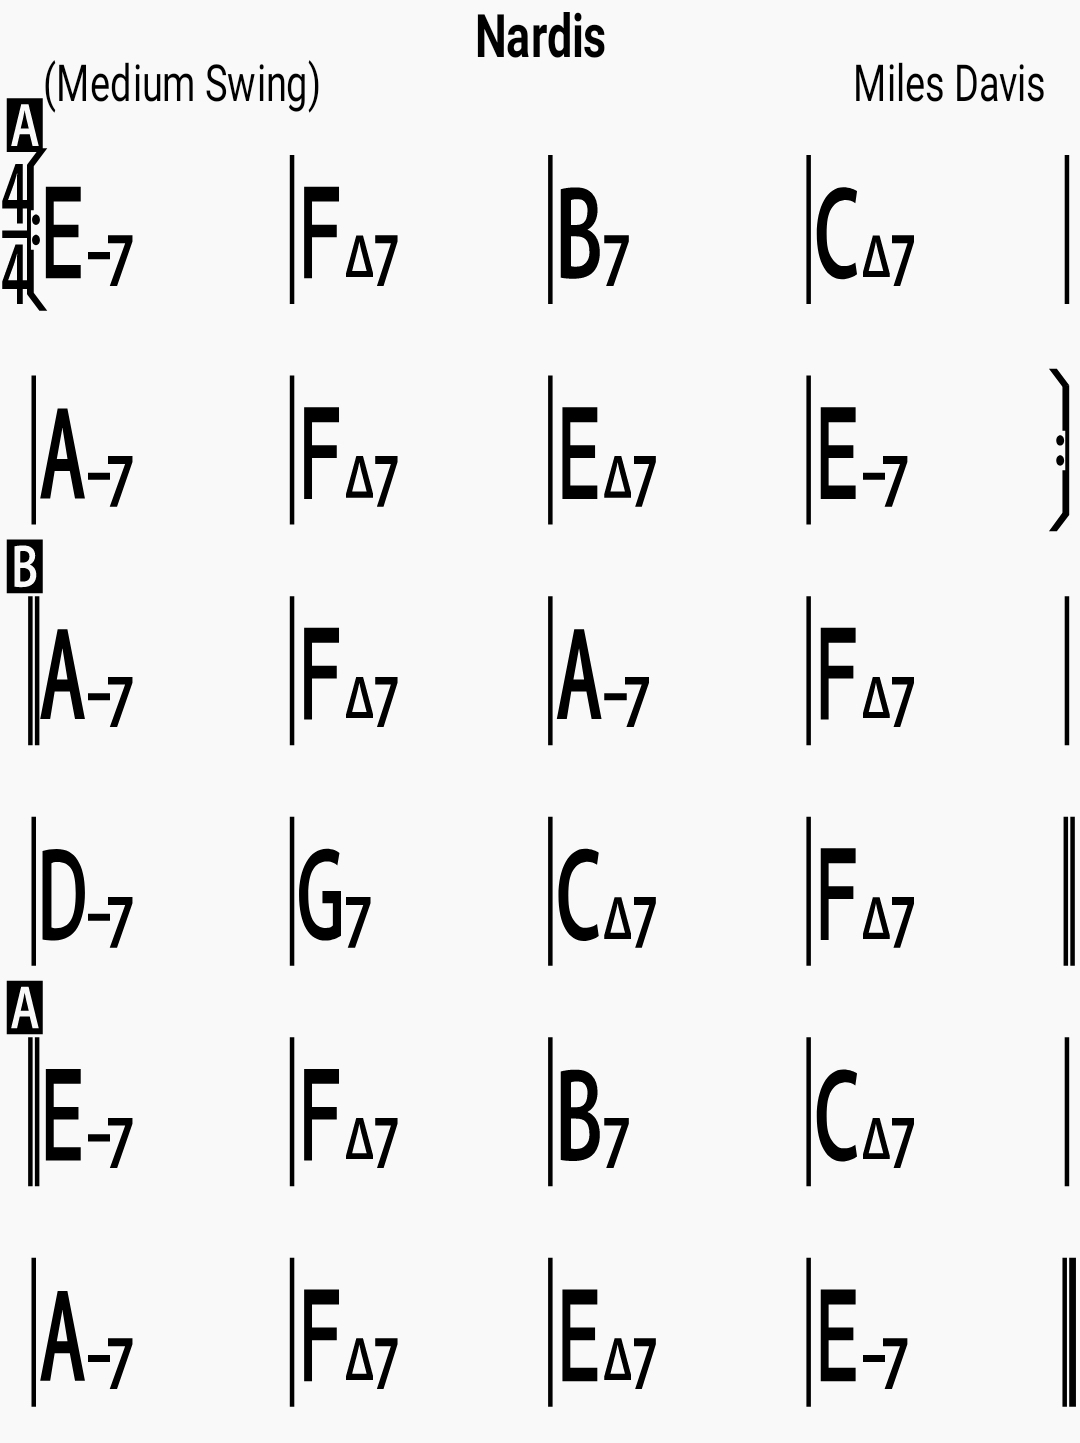 Chord chart for the jazz standard Nardis